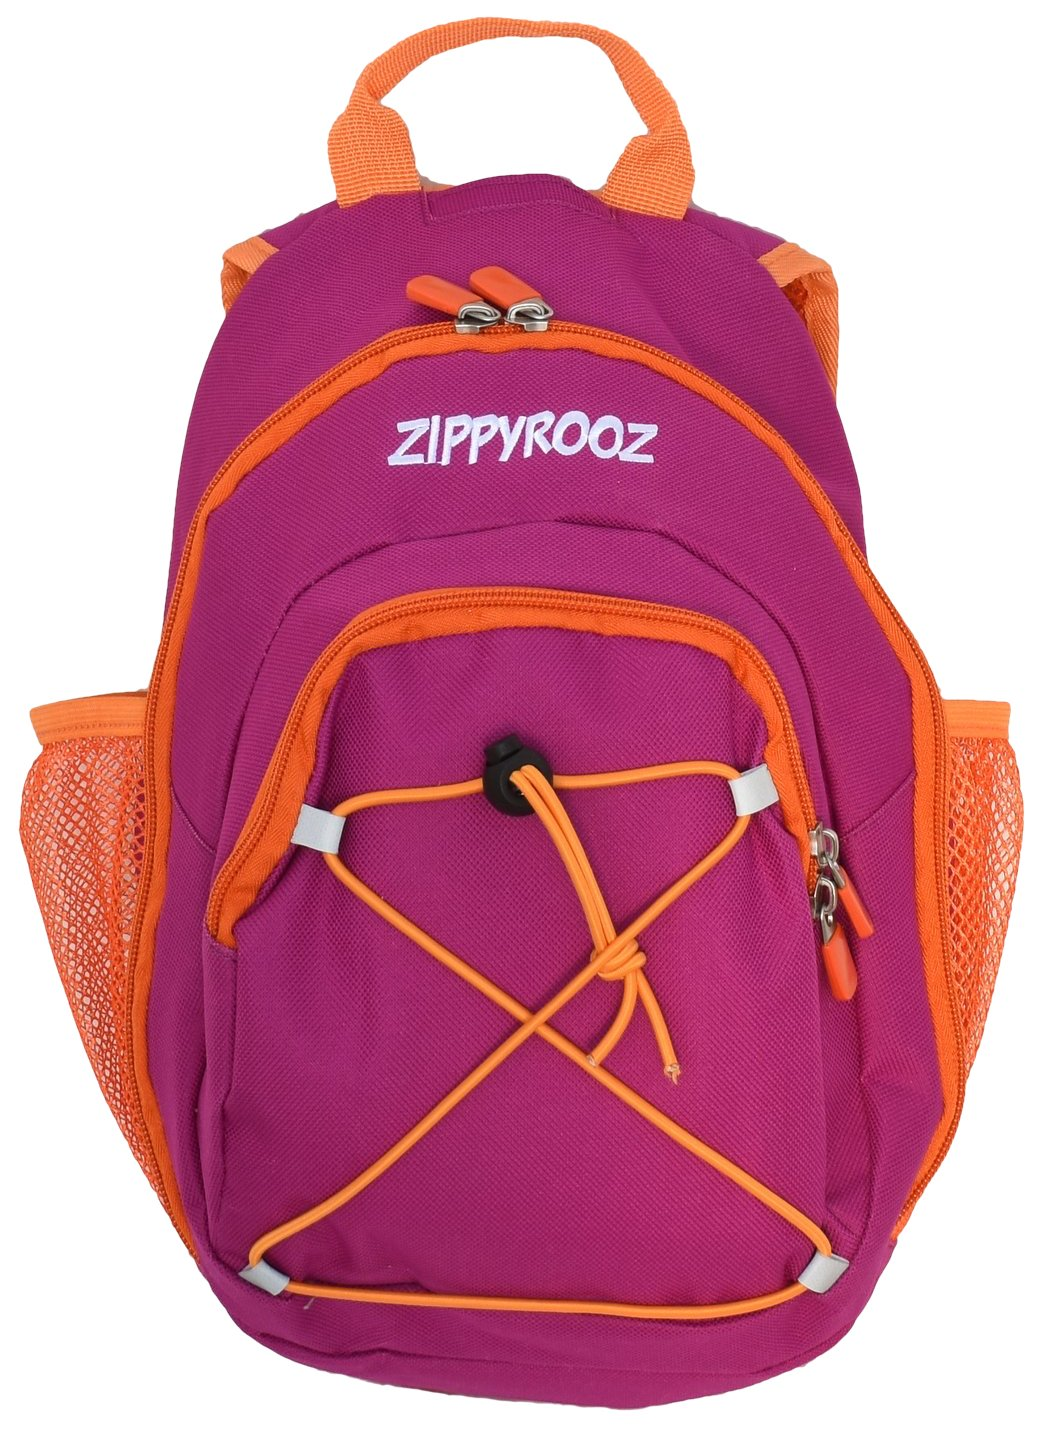 ZippyRooz Toddler & Little Kids Extra SMALL Hiking Backpack for Boys and Girls in 2 Colors (Purple & Orange 2.0)